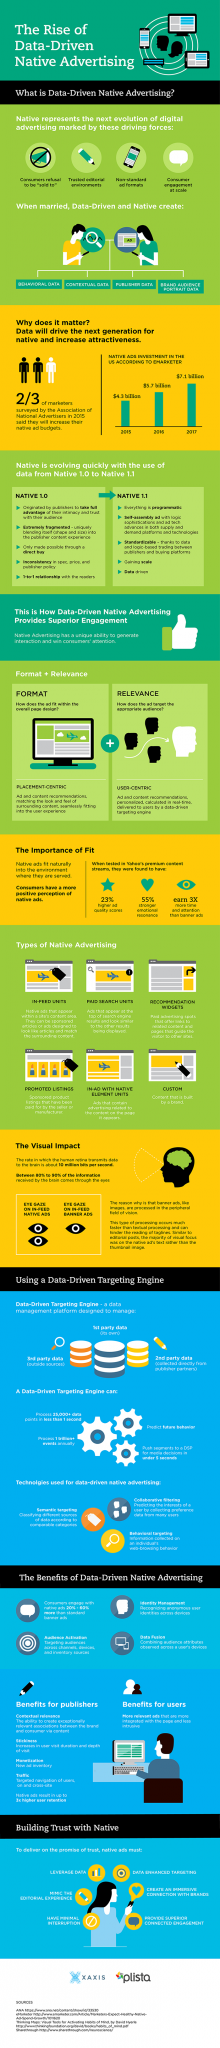 Infographic native advertising